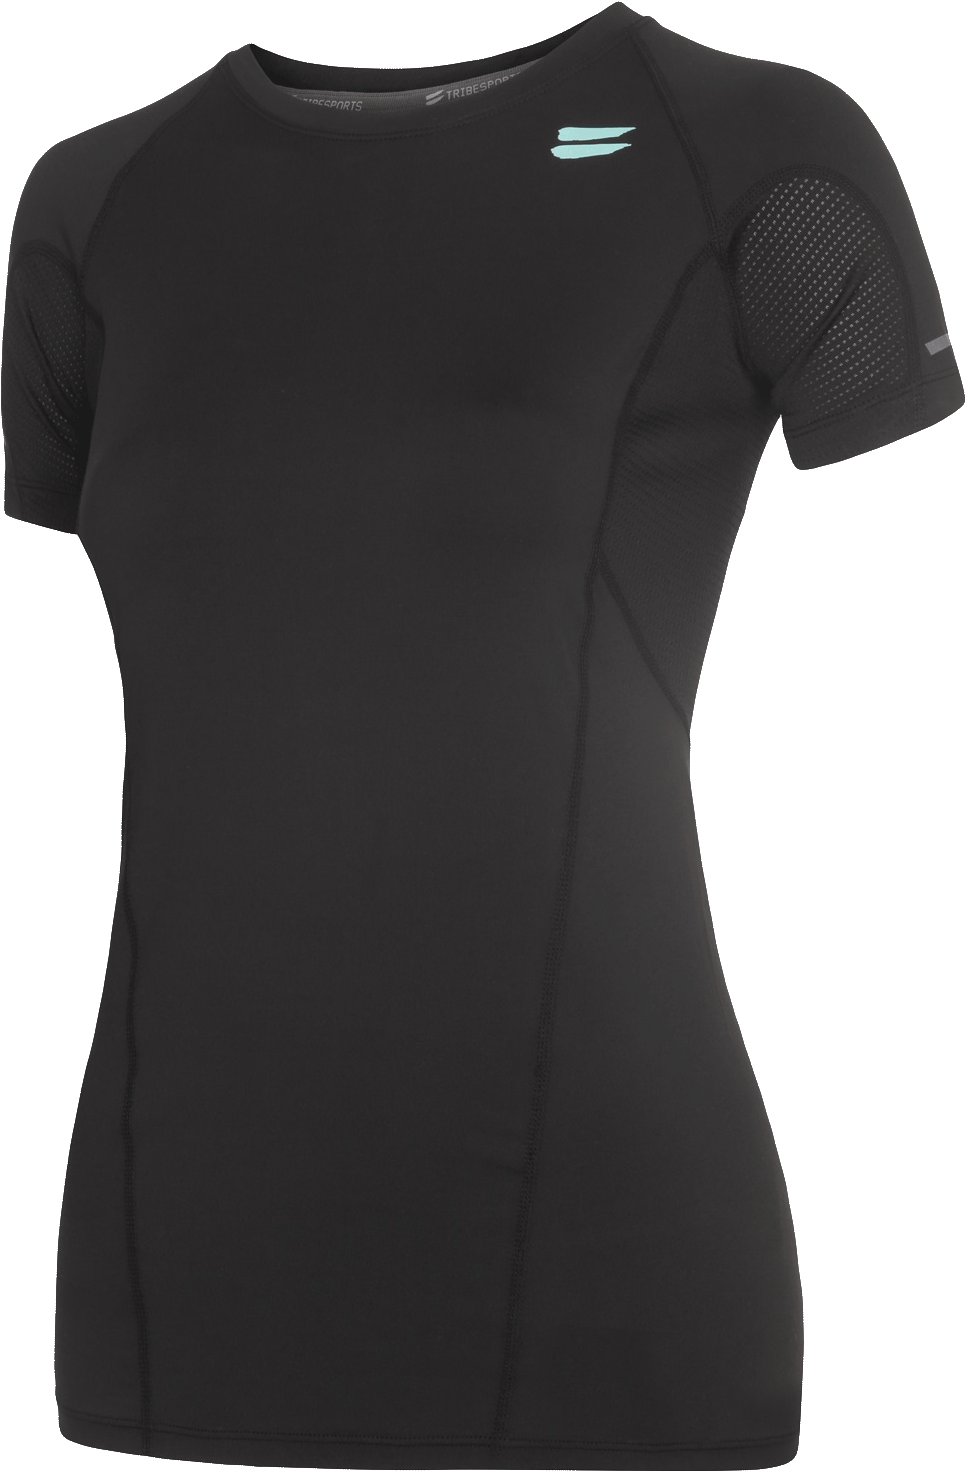 Women's Short Sleeved Tops